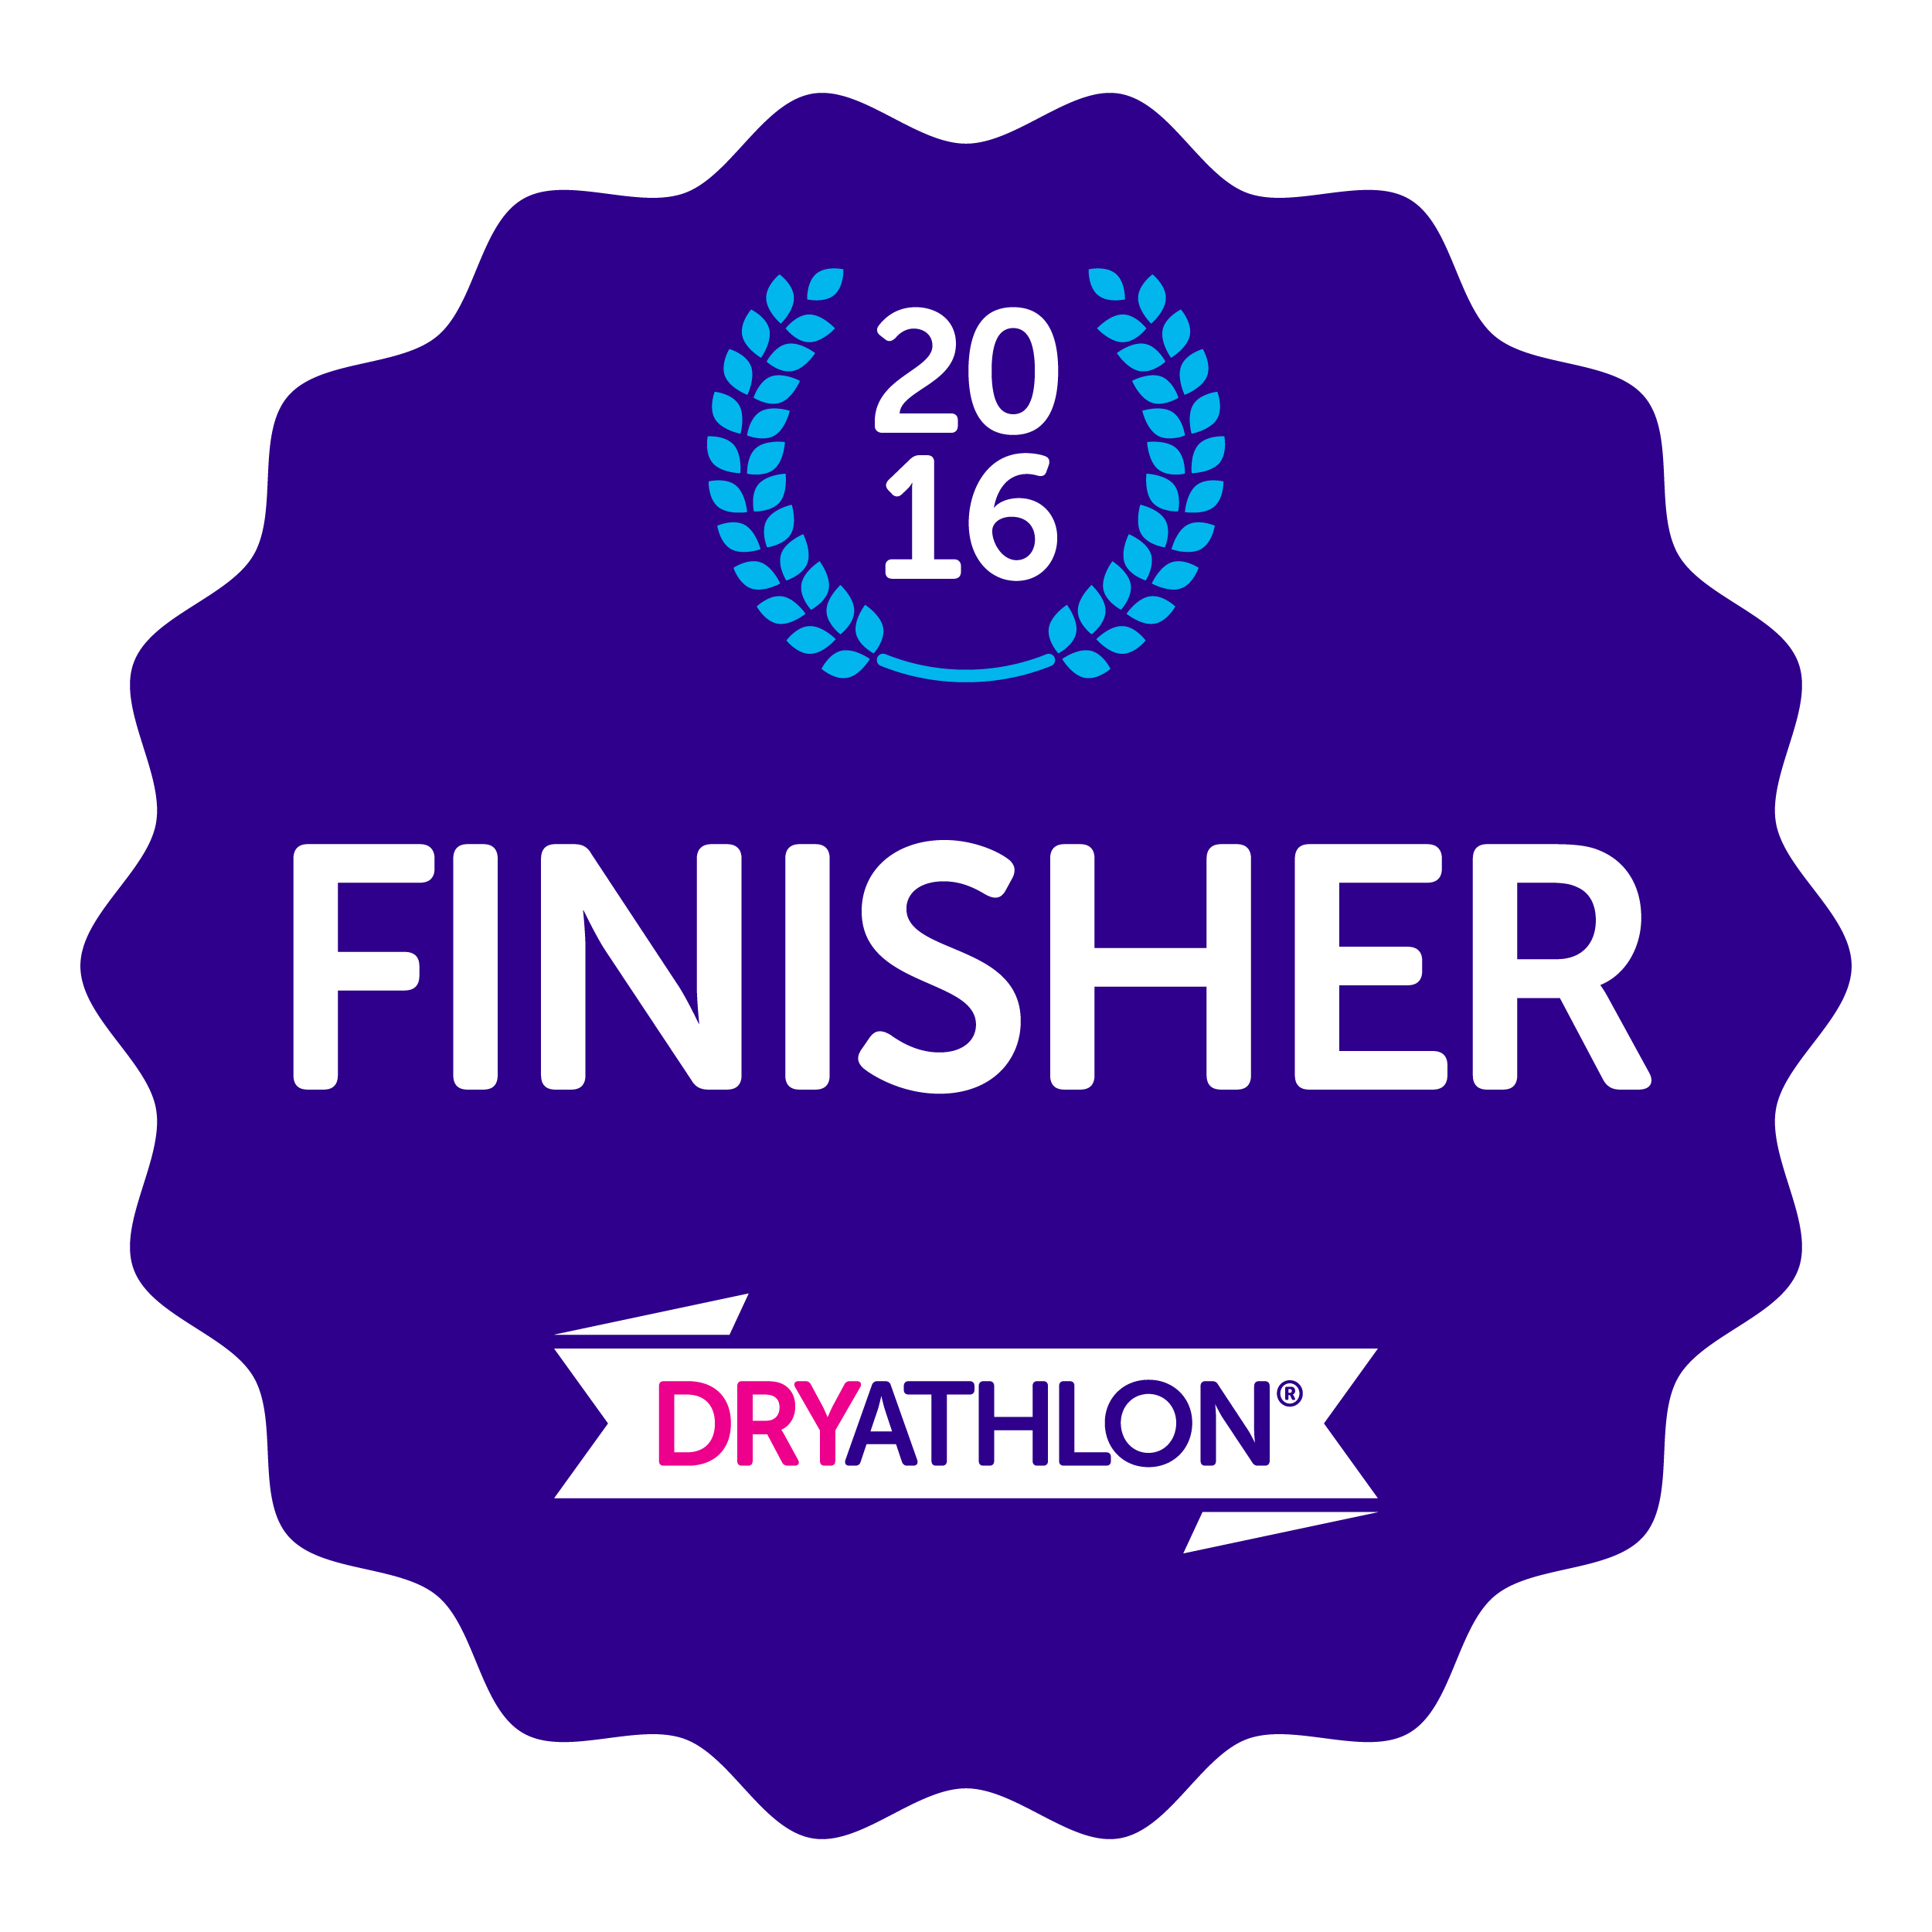 Finisher badge